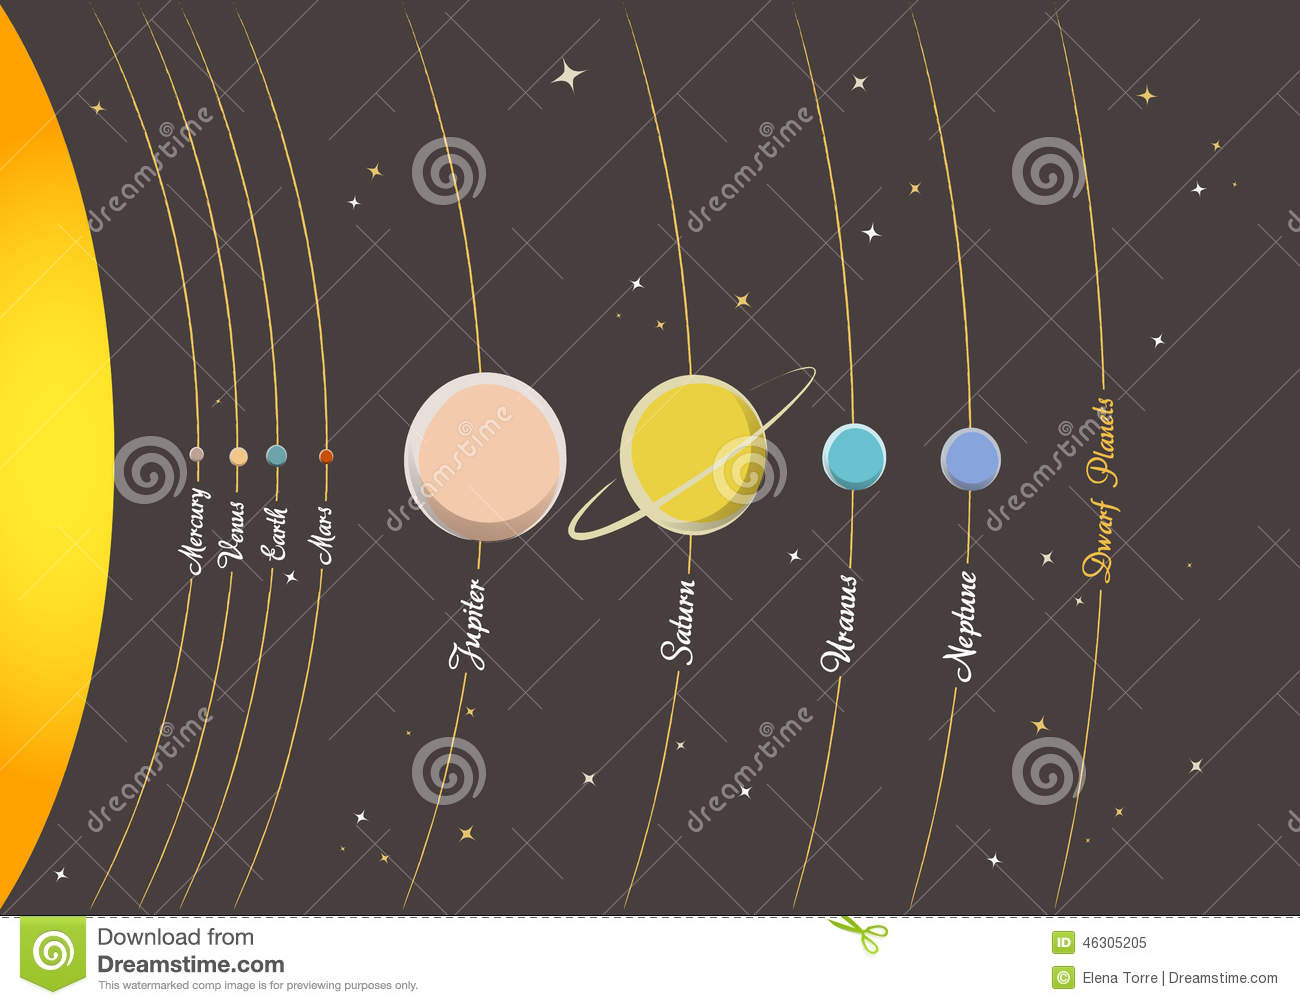 Planets of solar system stock vector illustration of colour 46305205 download planets of solar system stock vector illustration of colour 46305205 ccuart Image collections